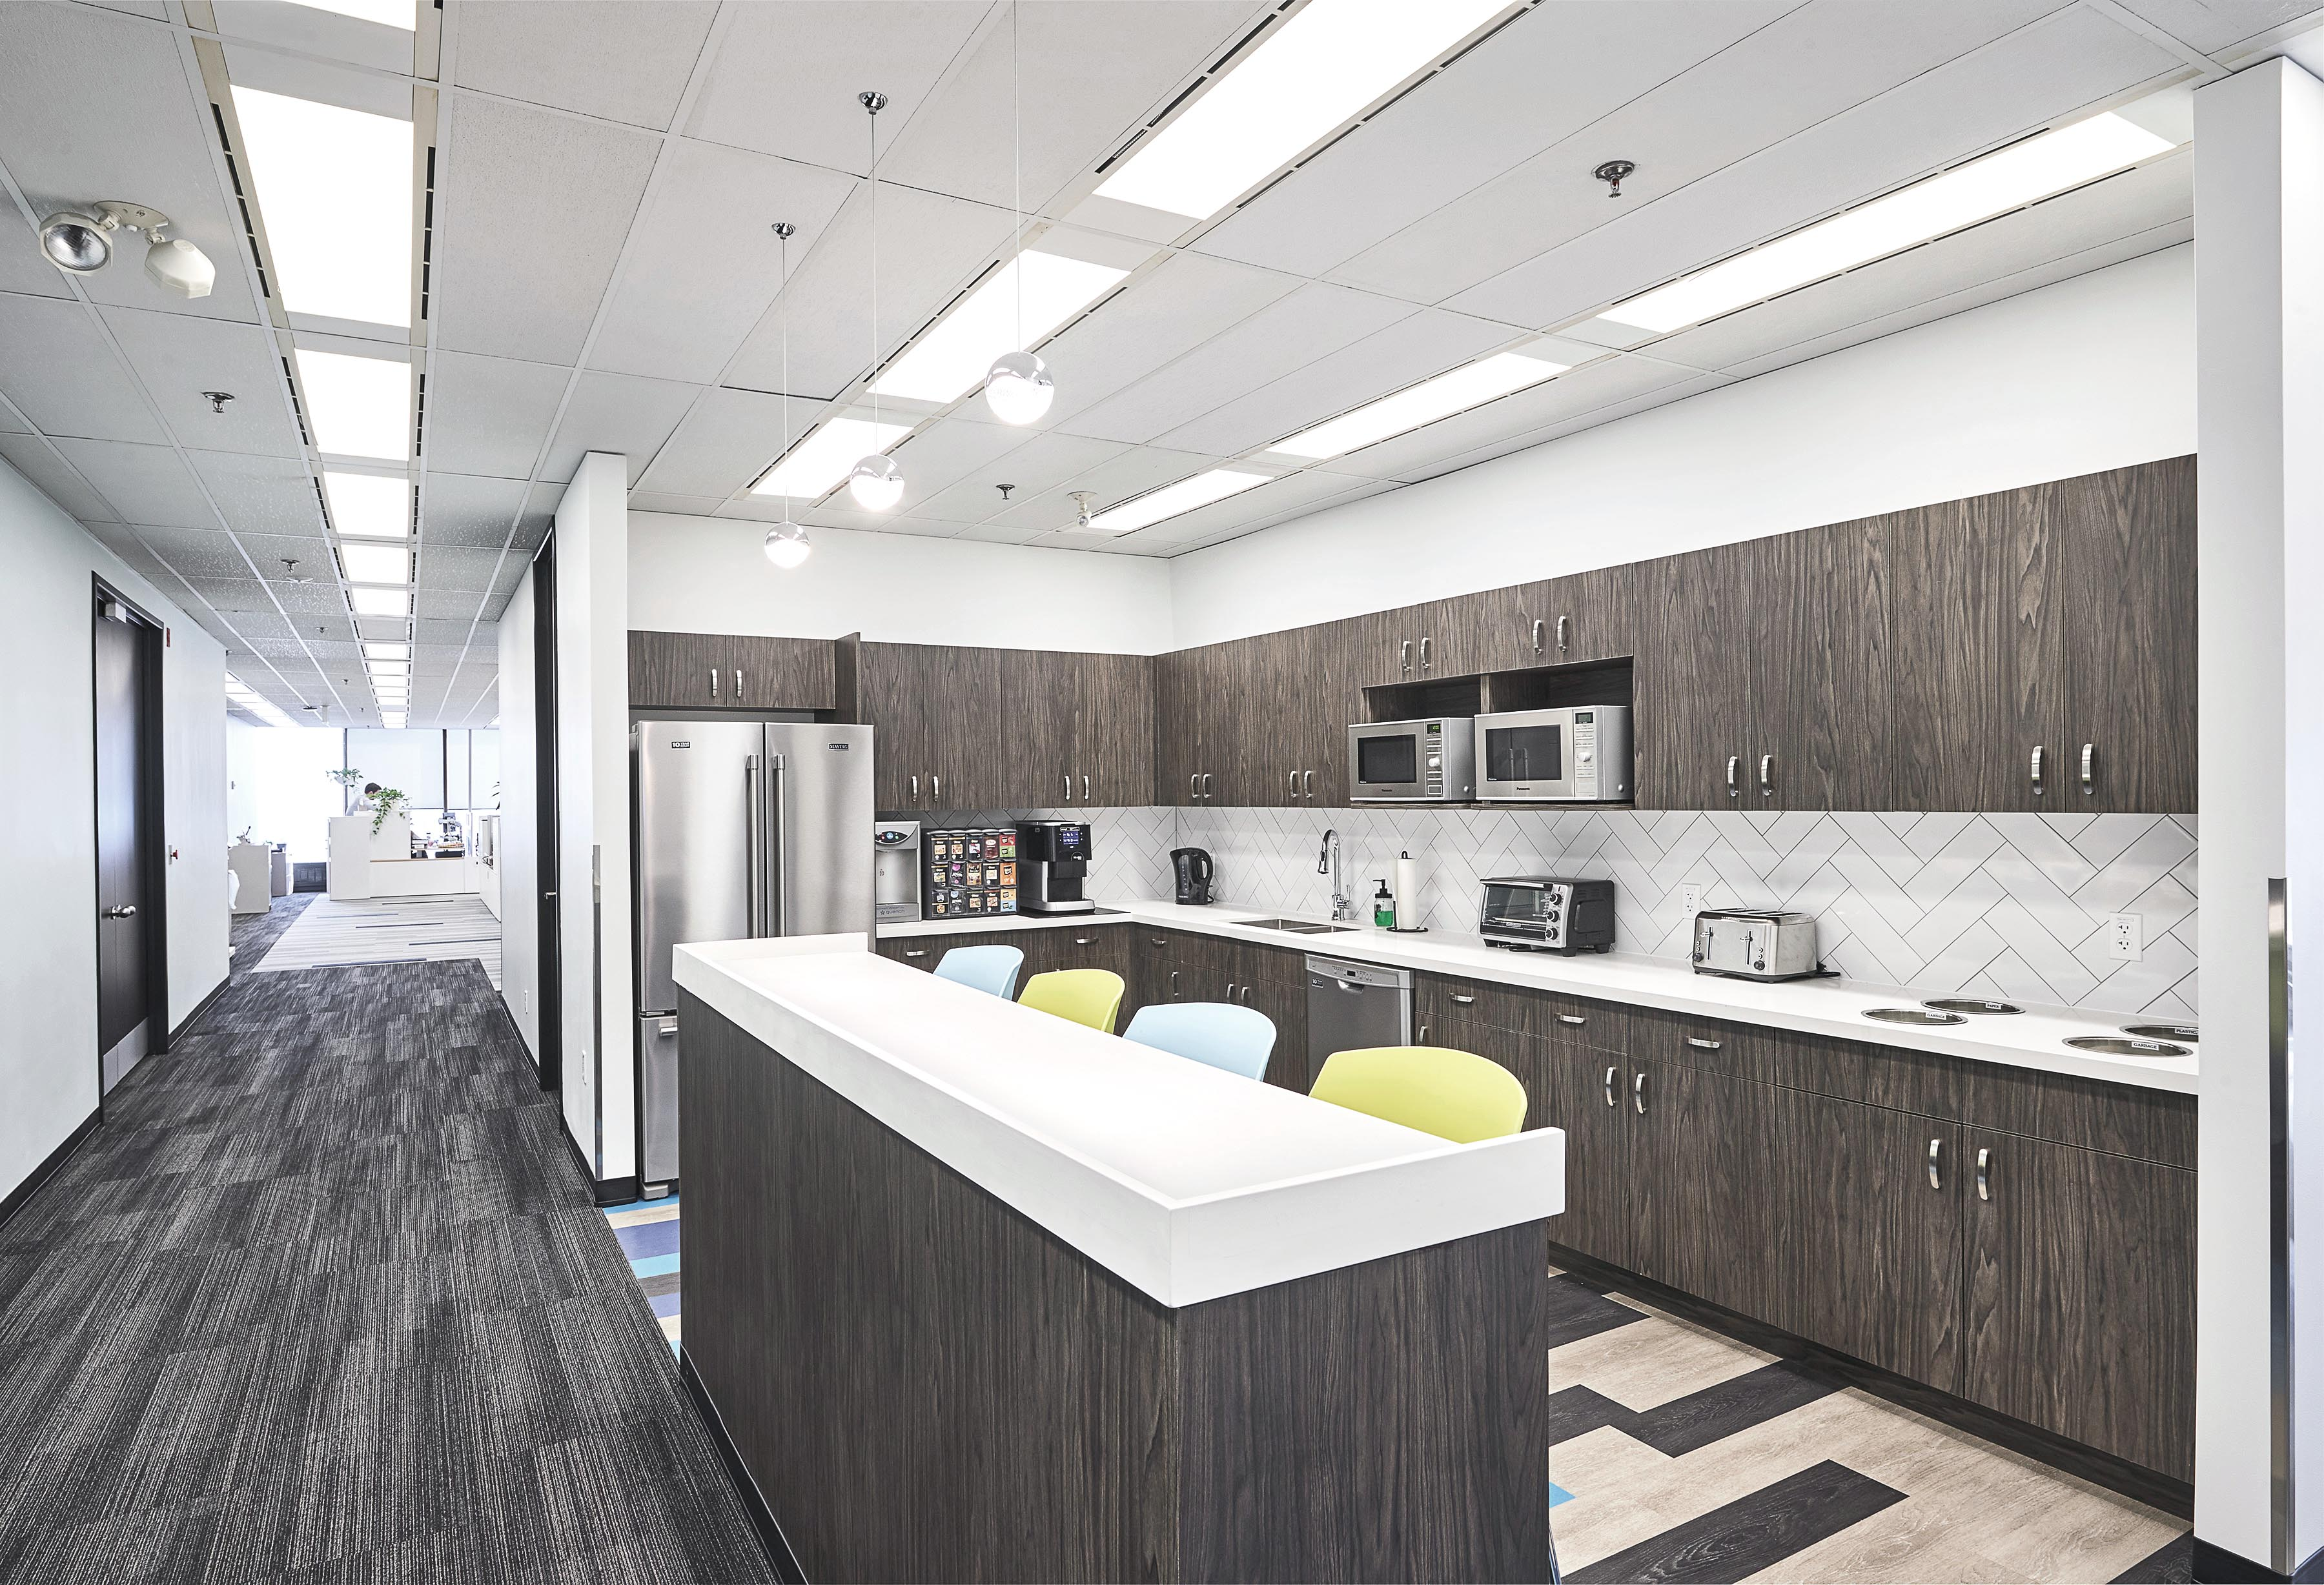 022219 - old_republic-staff-lunch-area_3